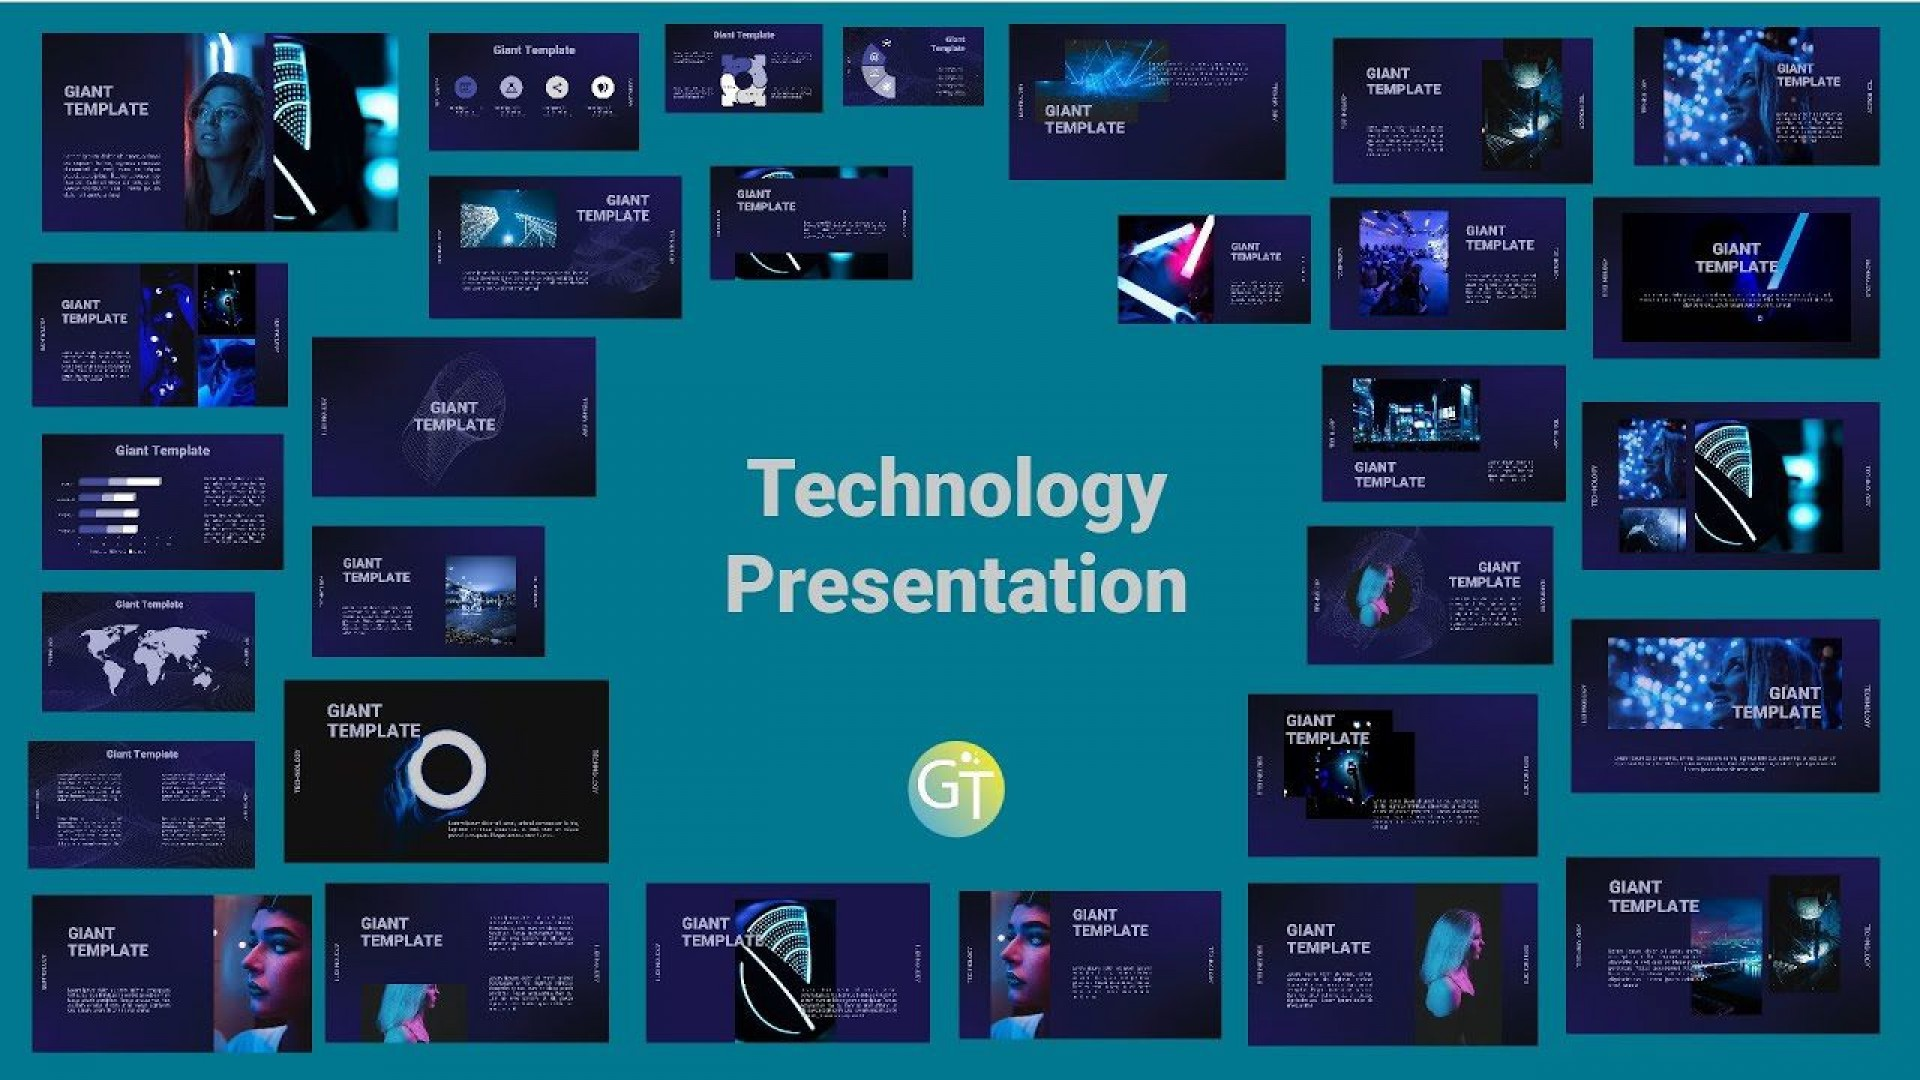 006 Astounding Free Technology Powerpoint Template Idea  Templates Animated Information Download1920